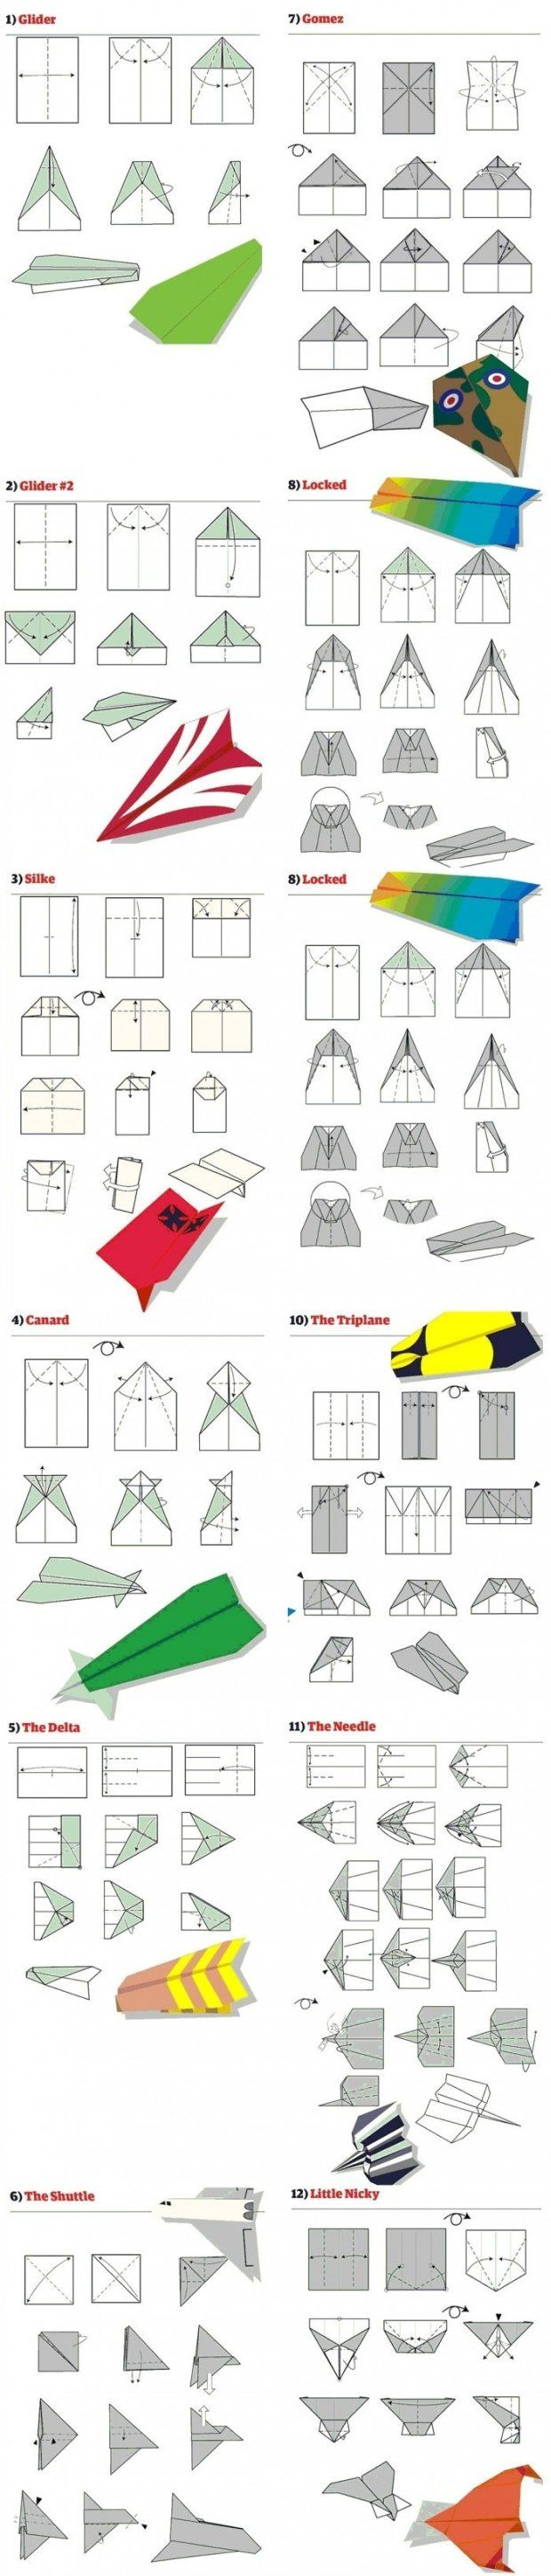 Paper Airplane Guide - I used these for Weird Science (Aerodynamics/Aerospace), and most of these are too hard for even a 10 year old.  Some are too hard for 20 and 30 somethings . . . They are VERY cool looking when you can figure out how to make them, though.